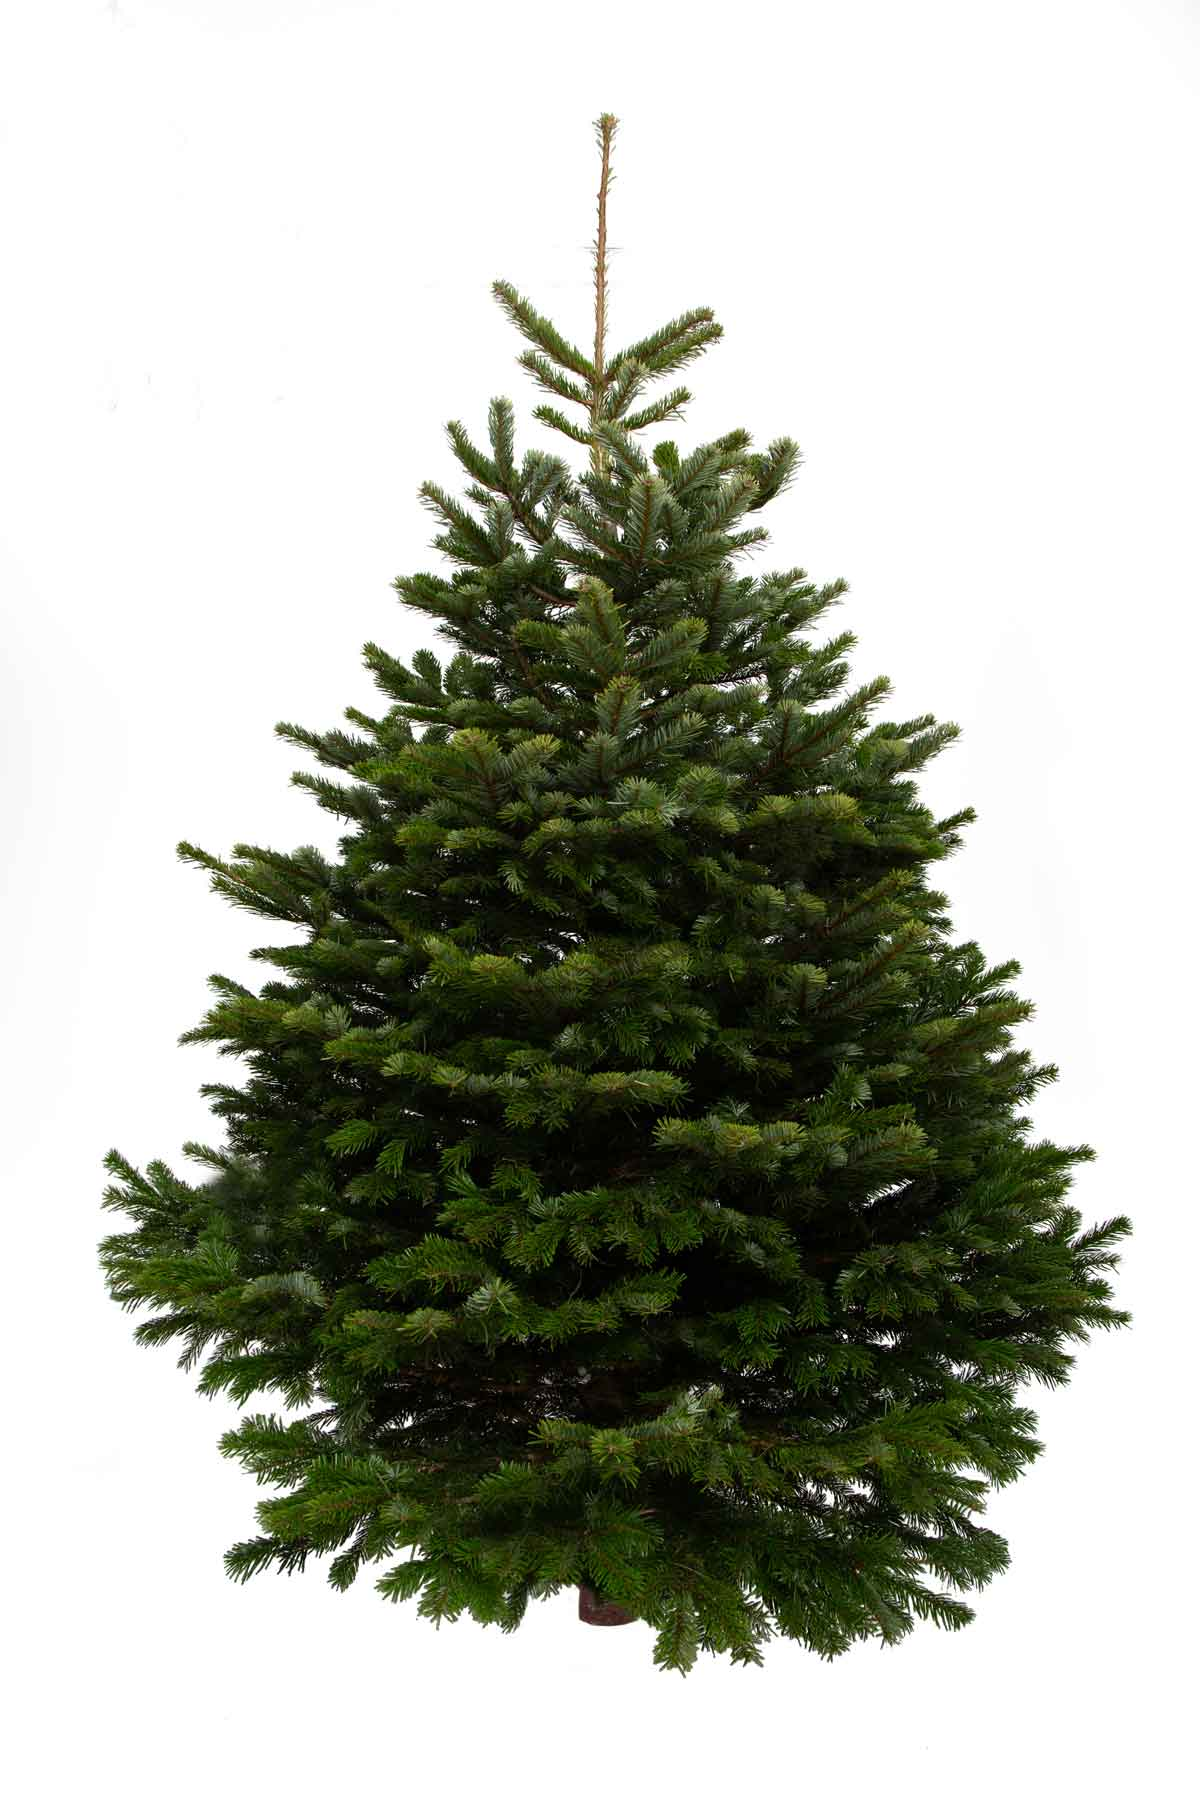 Indoor Christmas Tree - Nordmann Fir - from Pines and Needles